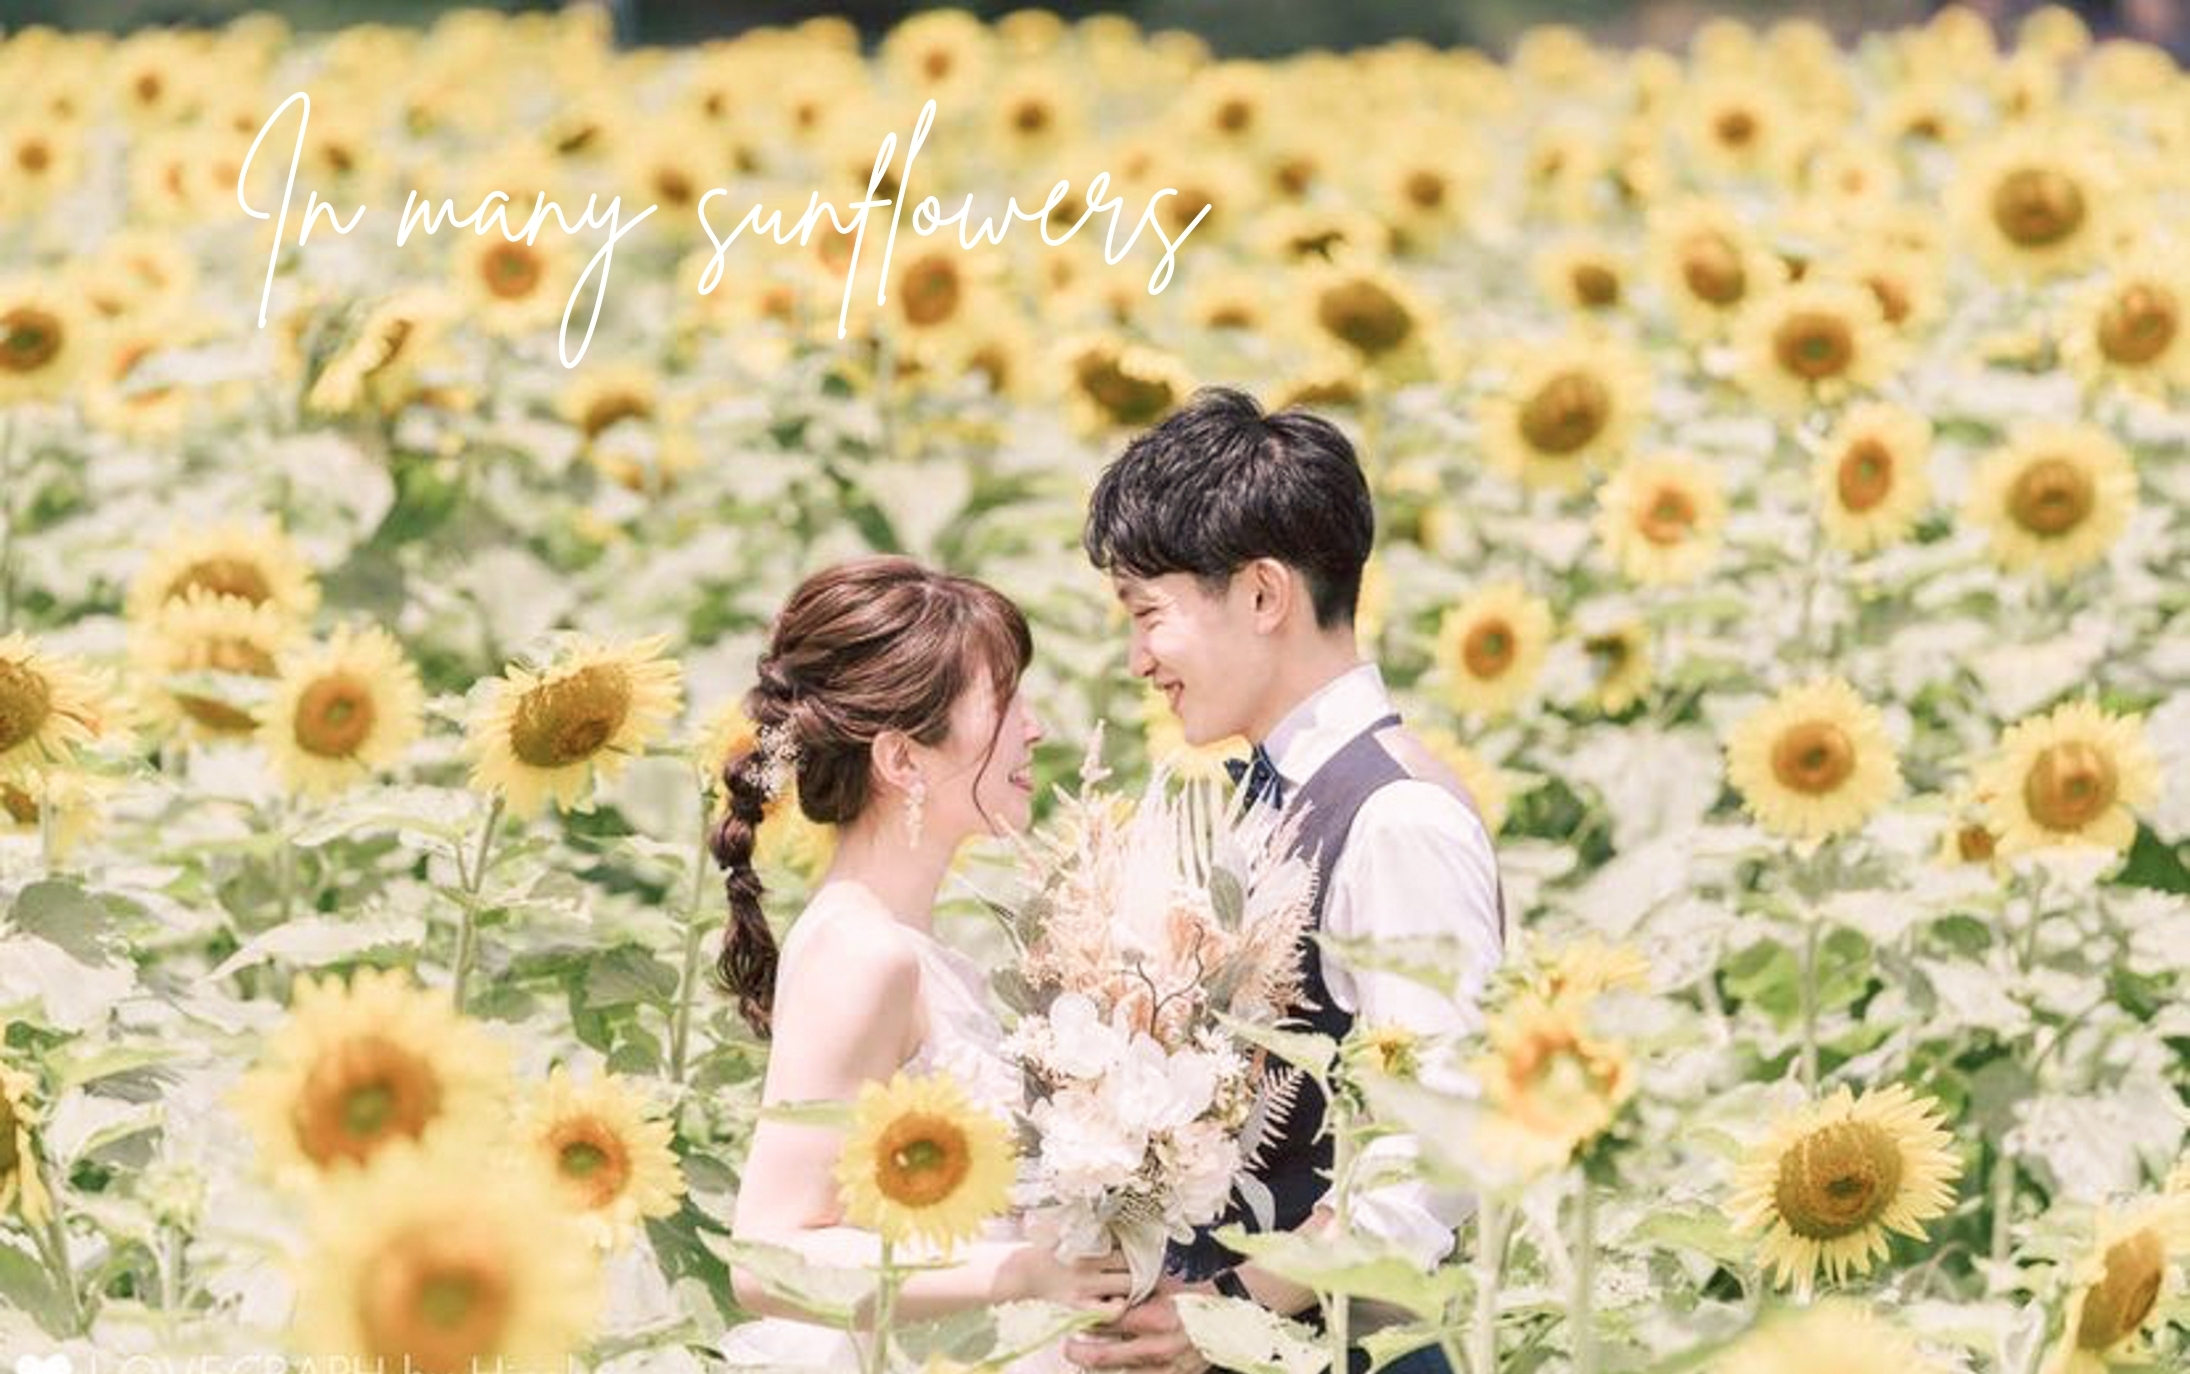 Many sunflowers and CarryBouquet♡